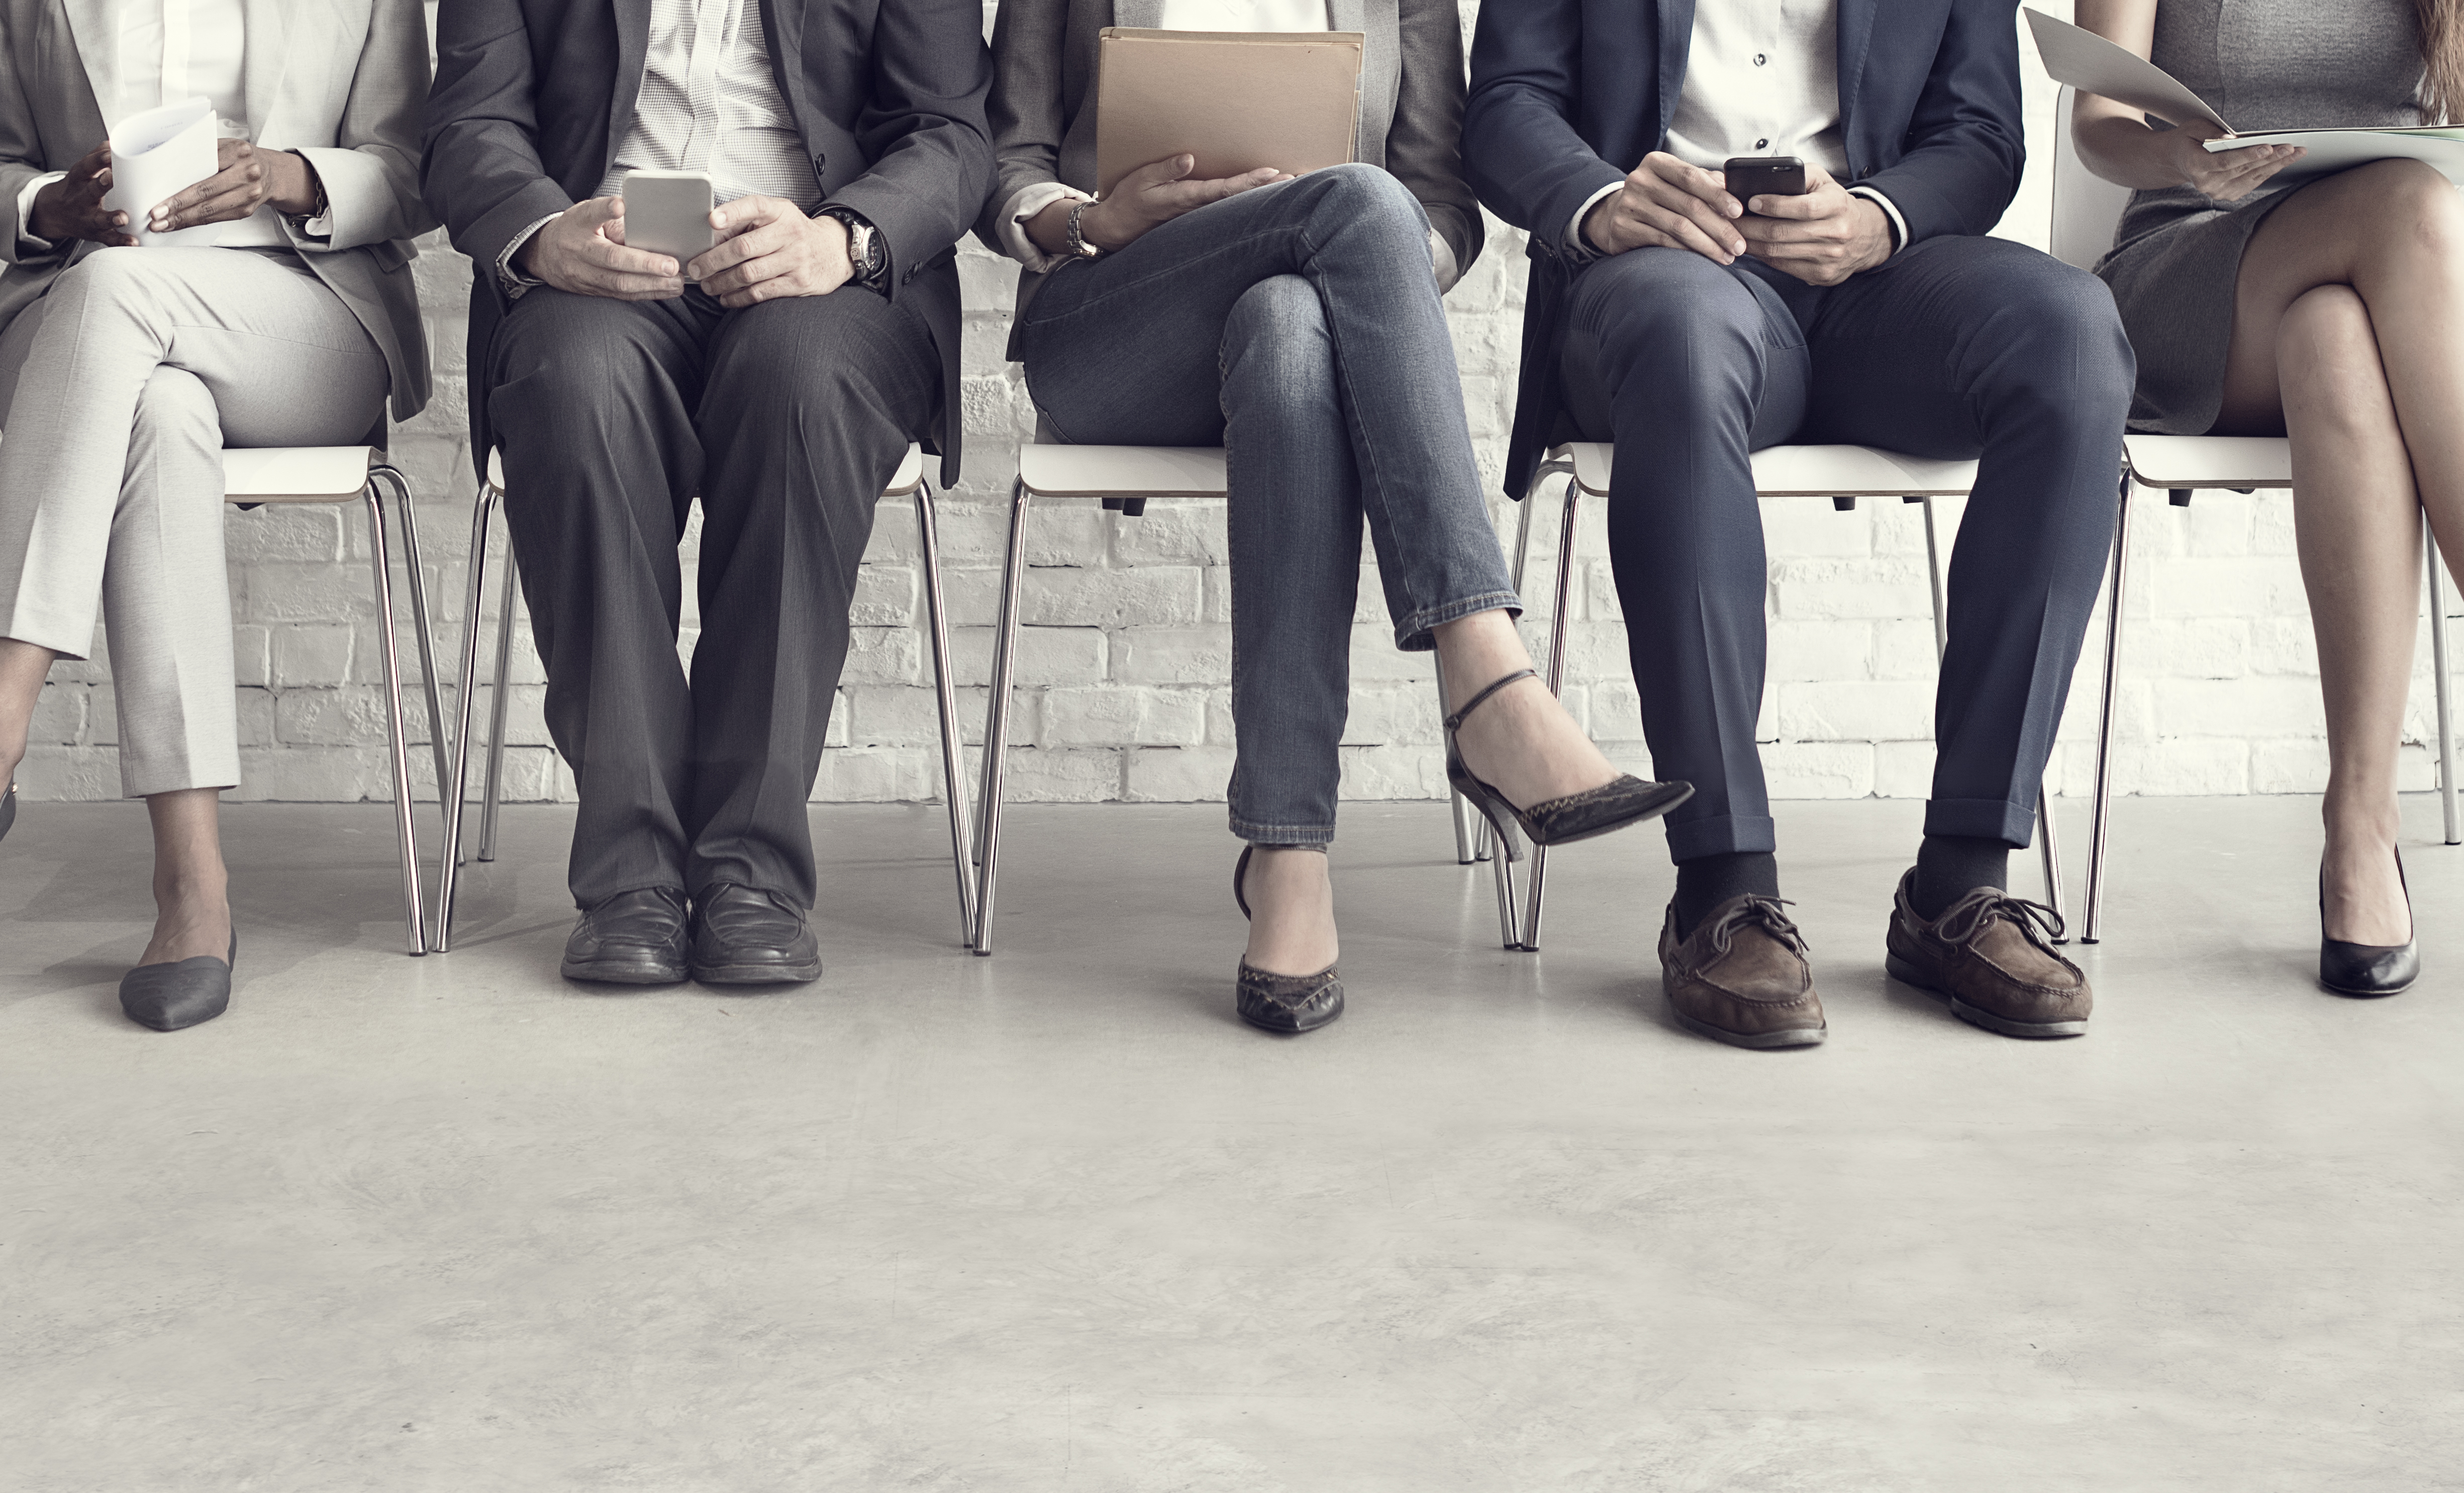 A row of job applicants wearing business clothes sitting in chairs.